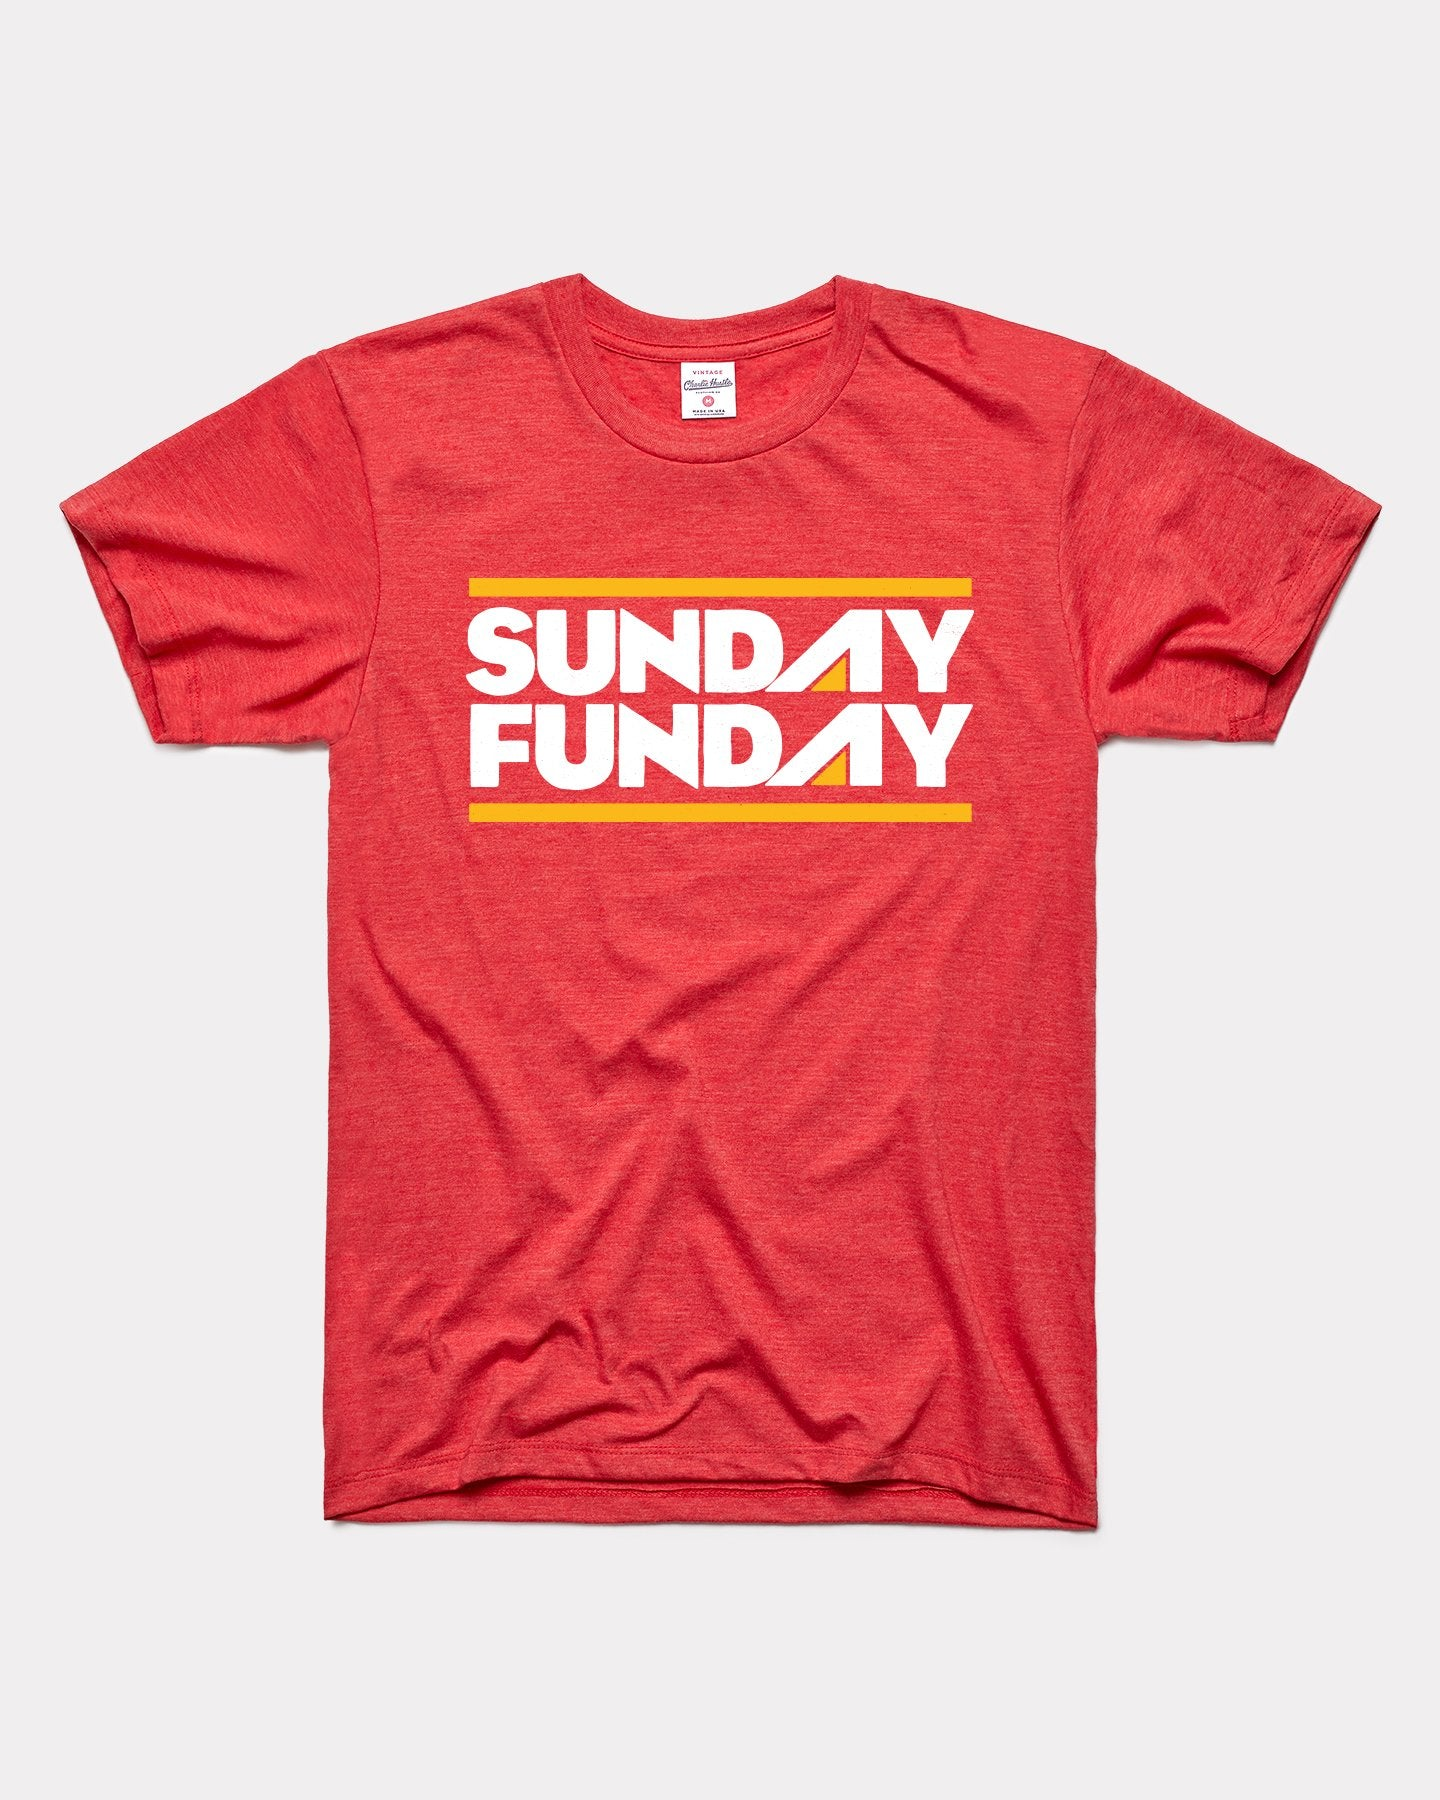 Red Sunday Funday Vintage T-Shirt